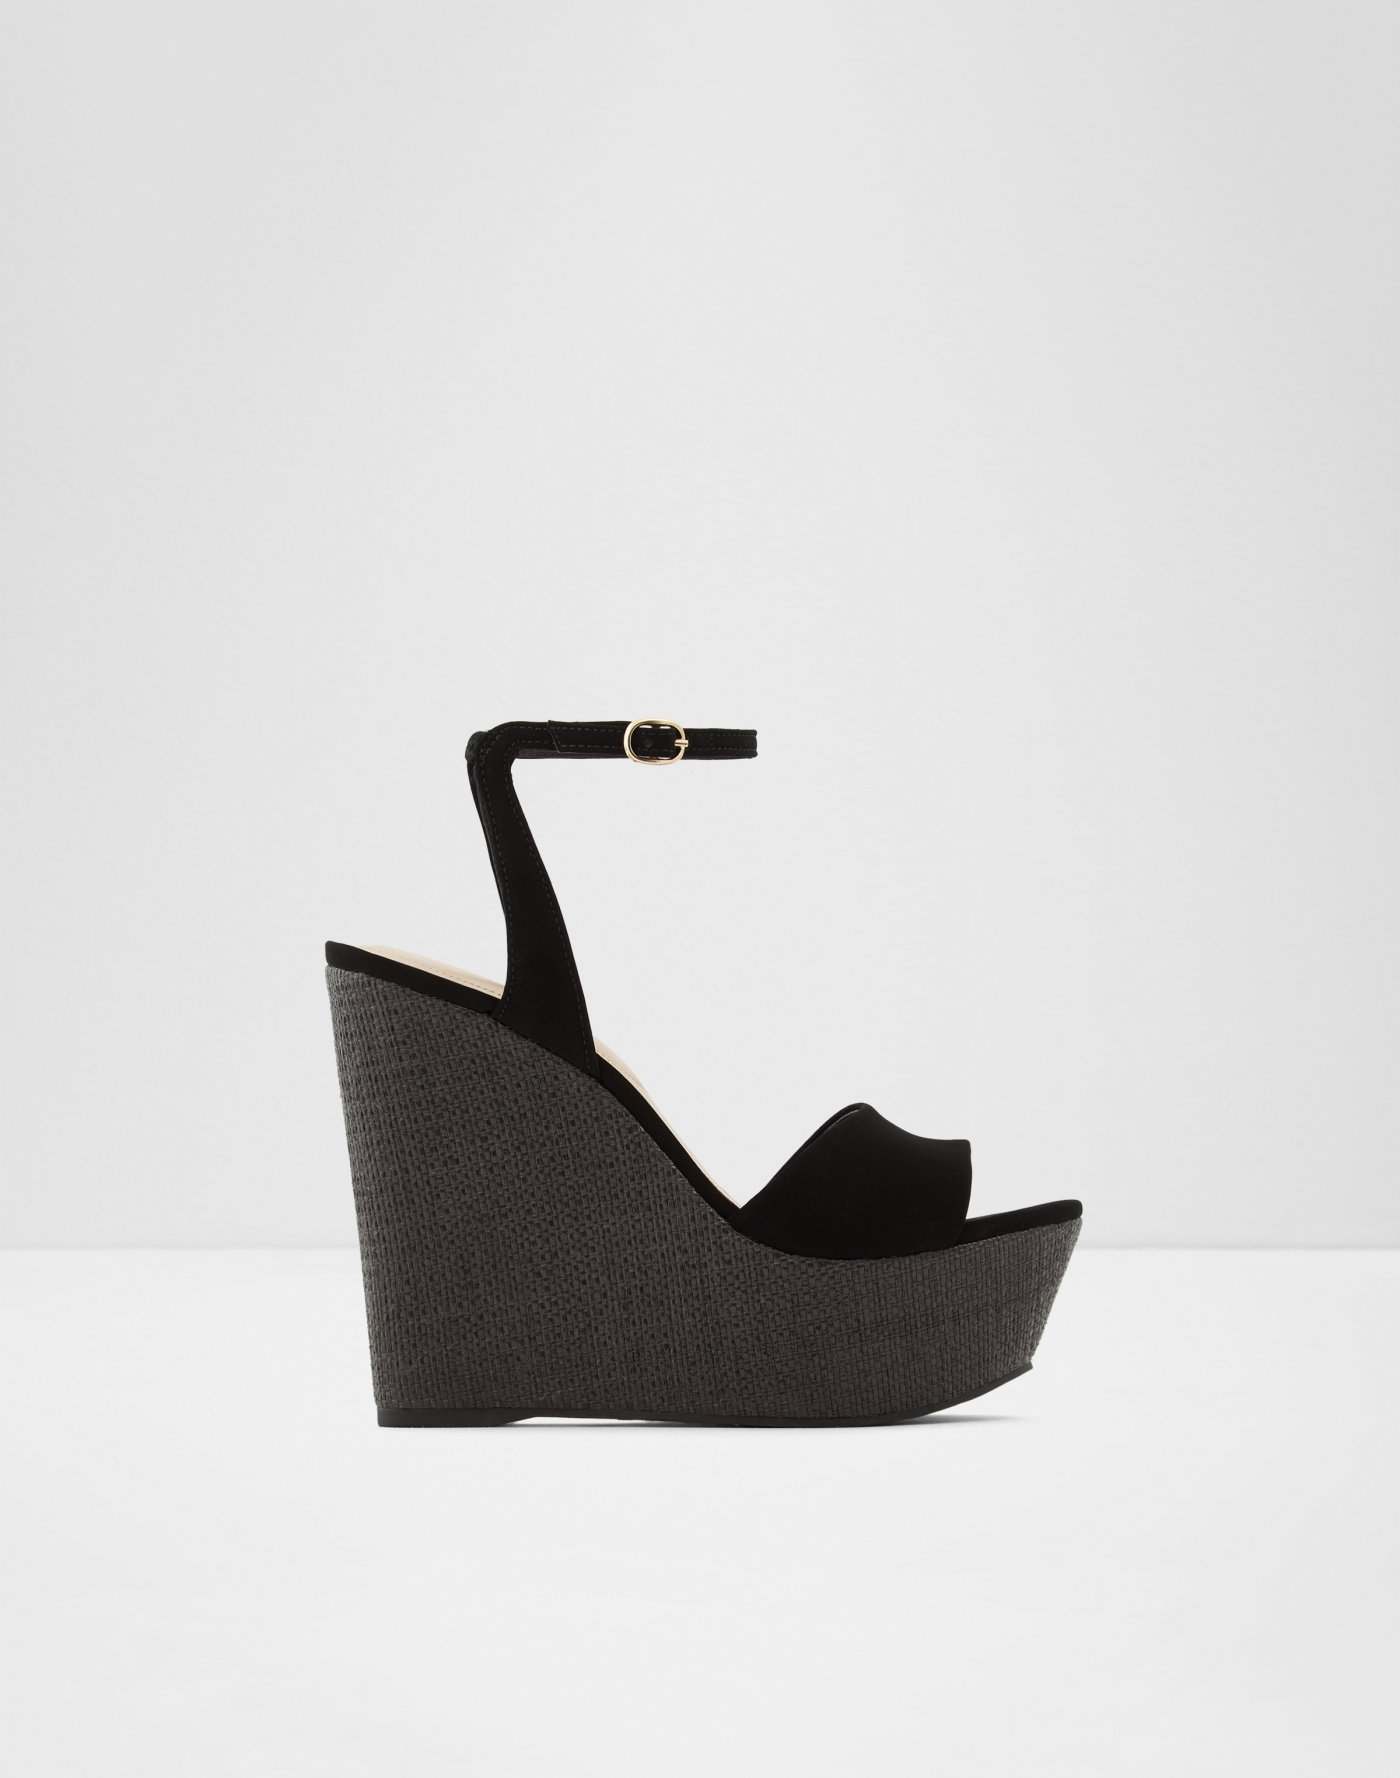 39a22dc86a5 Women's Heels | Black, Red, Nude, Silver Heels | ALDO US | Aldoshoes ...